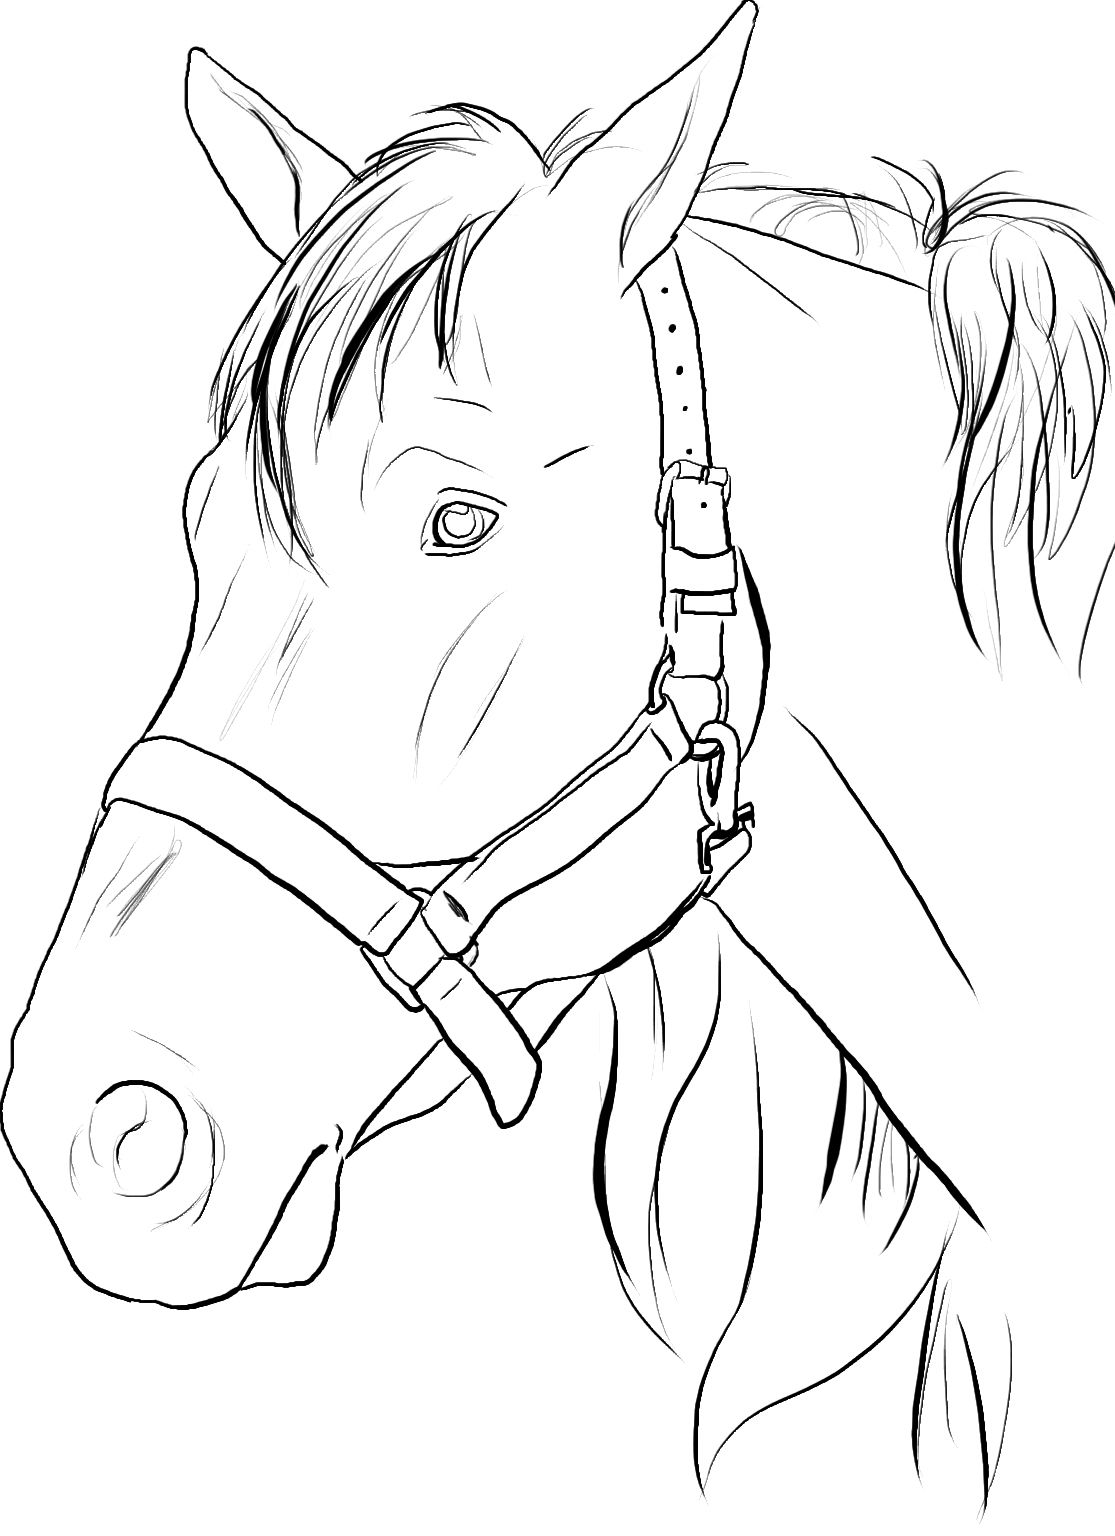 1115x1536 Horse Head Coloring Pages To Print